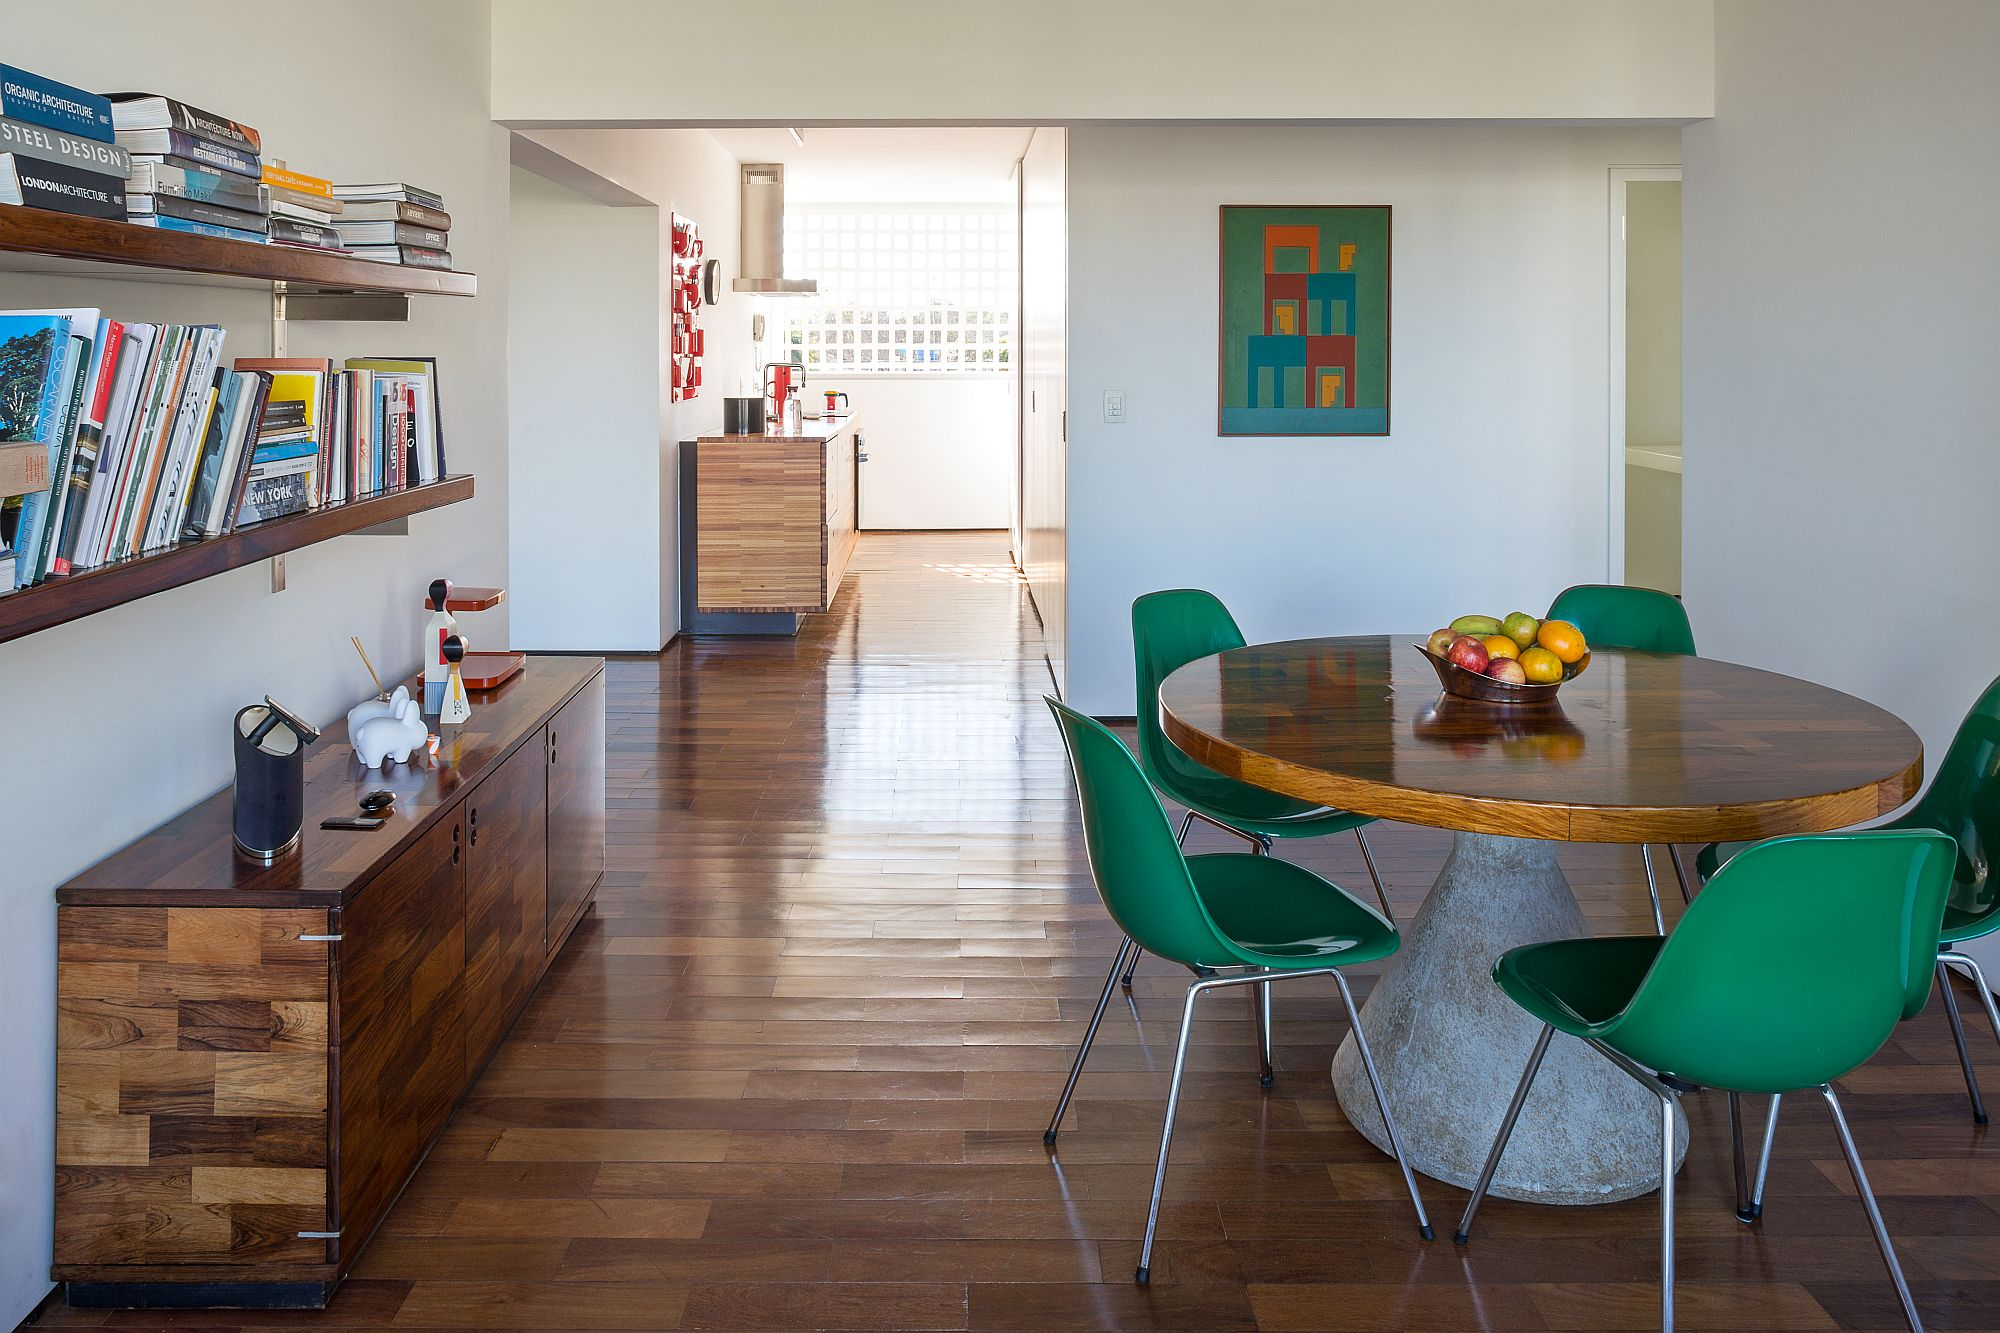 Dining-table-with-concrete-base-wooden-top-is-surrounded-by-beautiful-green-chairs-40981